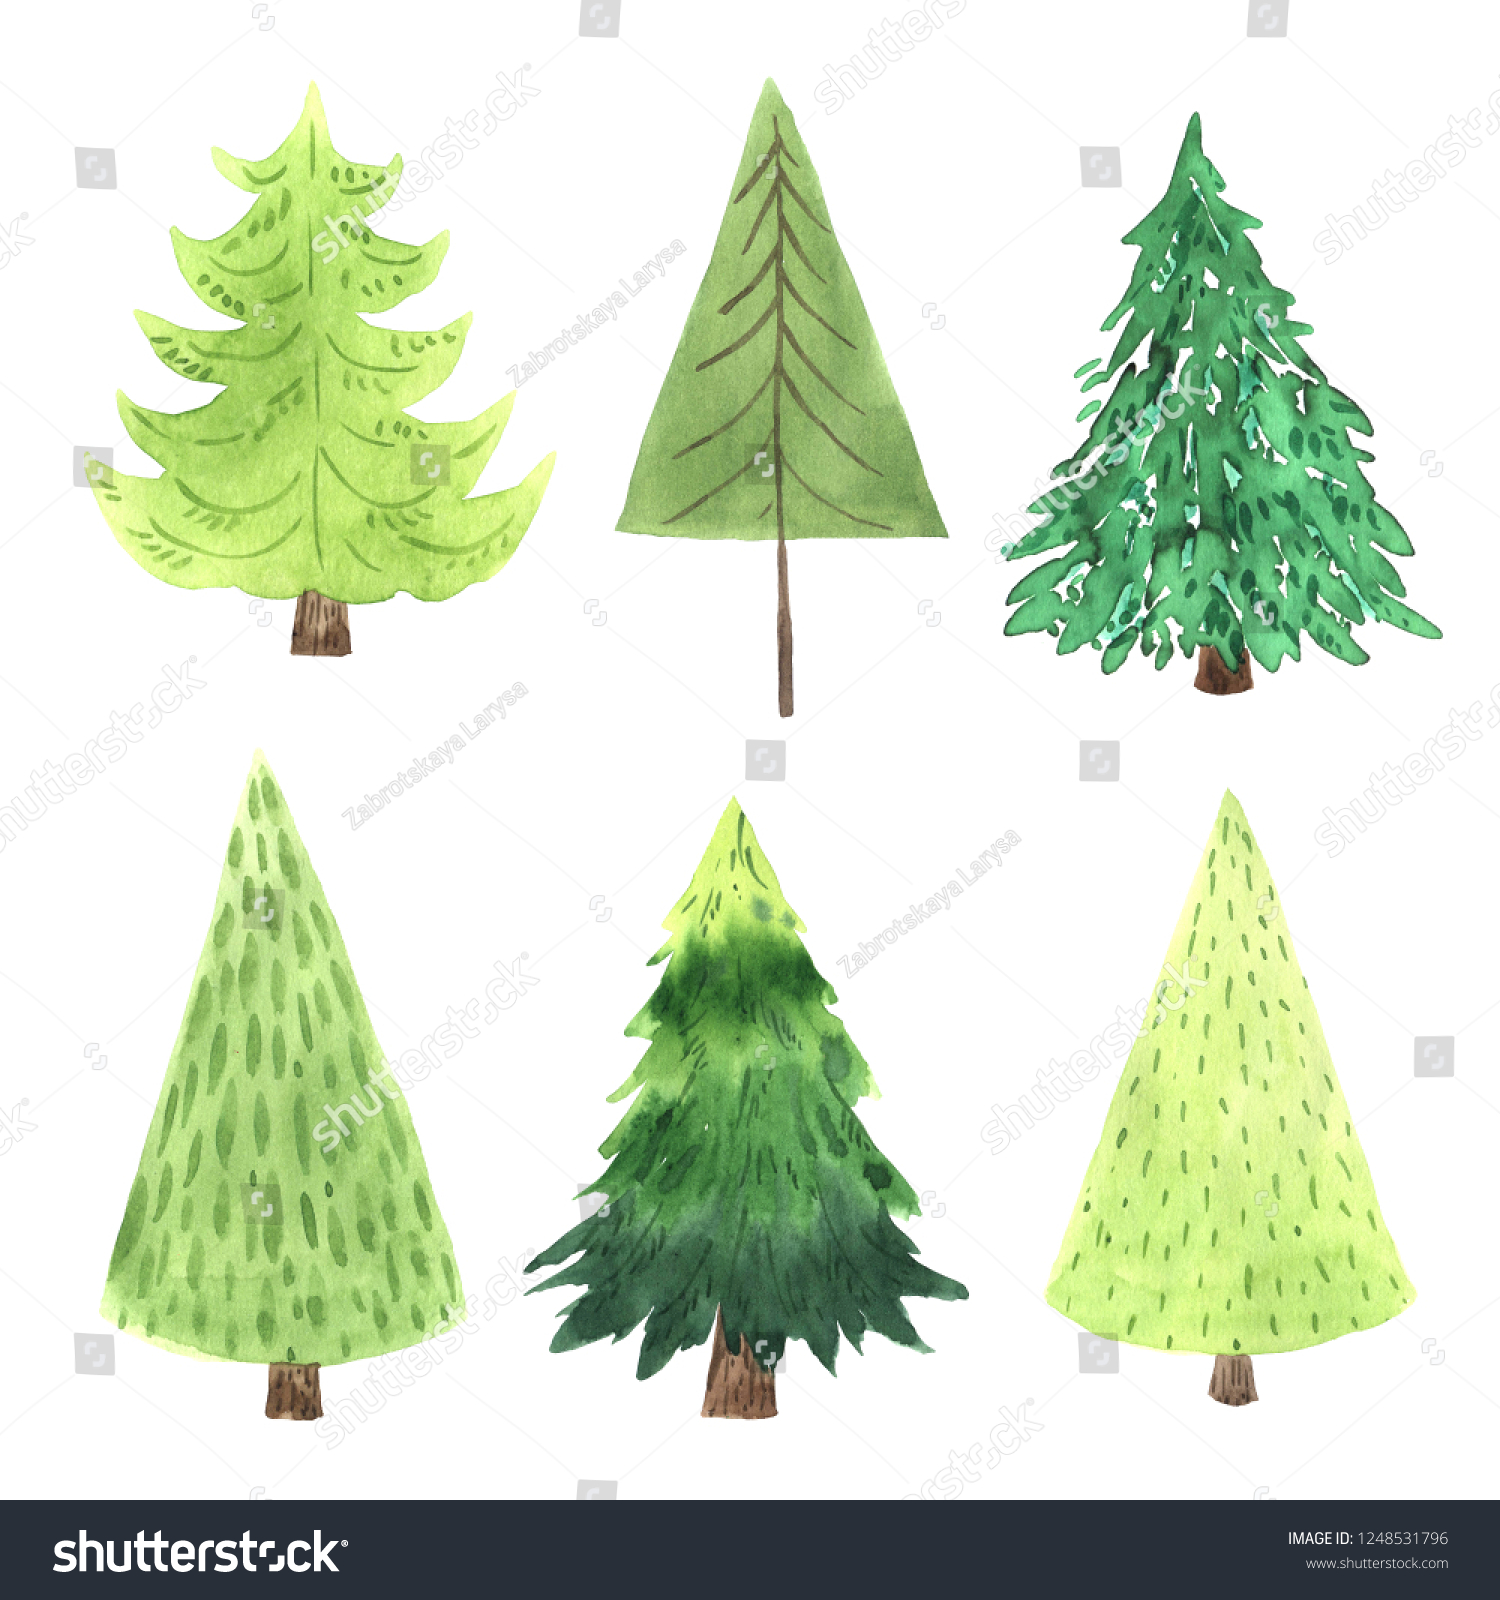 royalty free stock illustration of watercolor green christmas tree